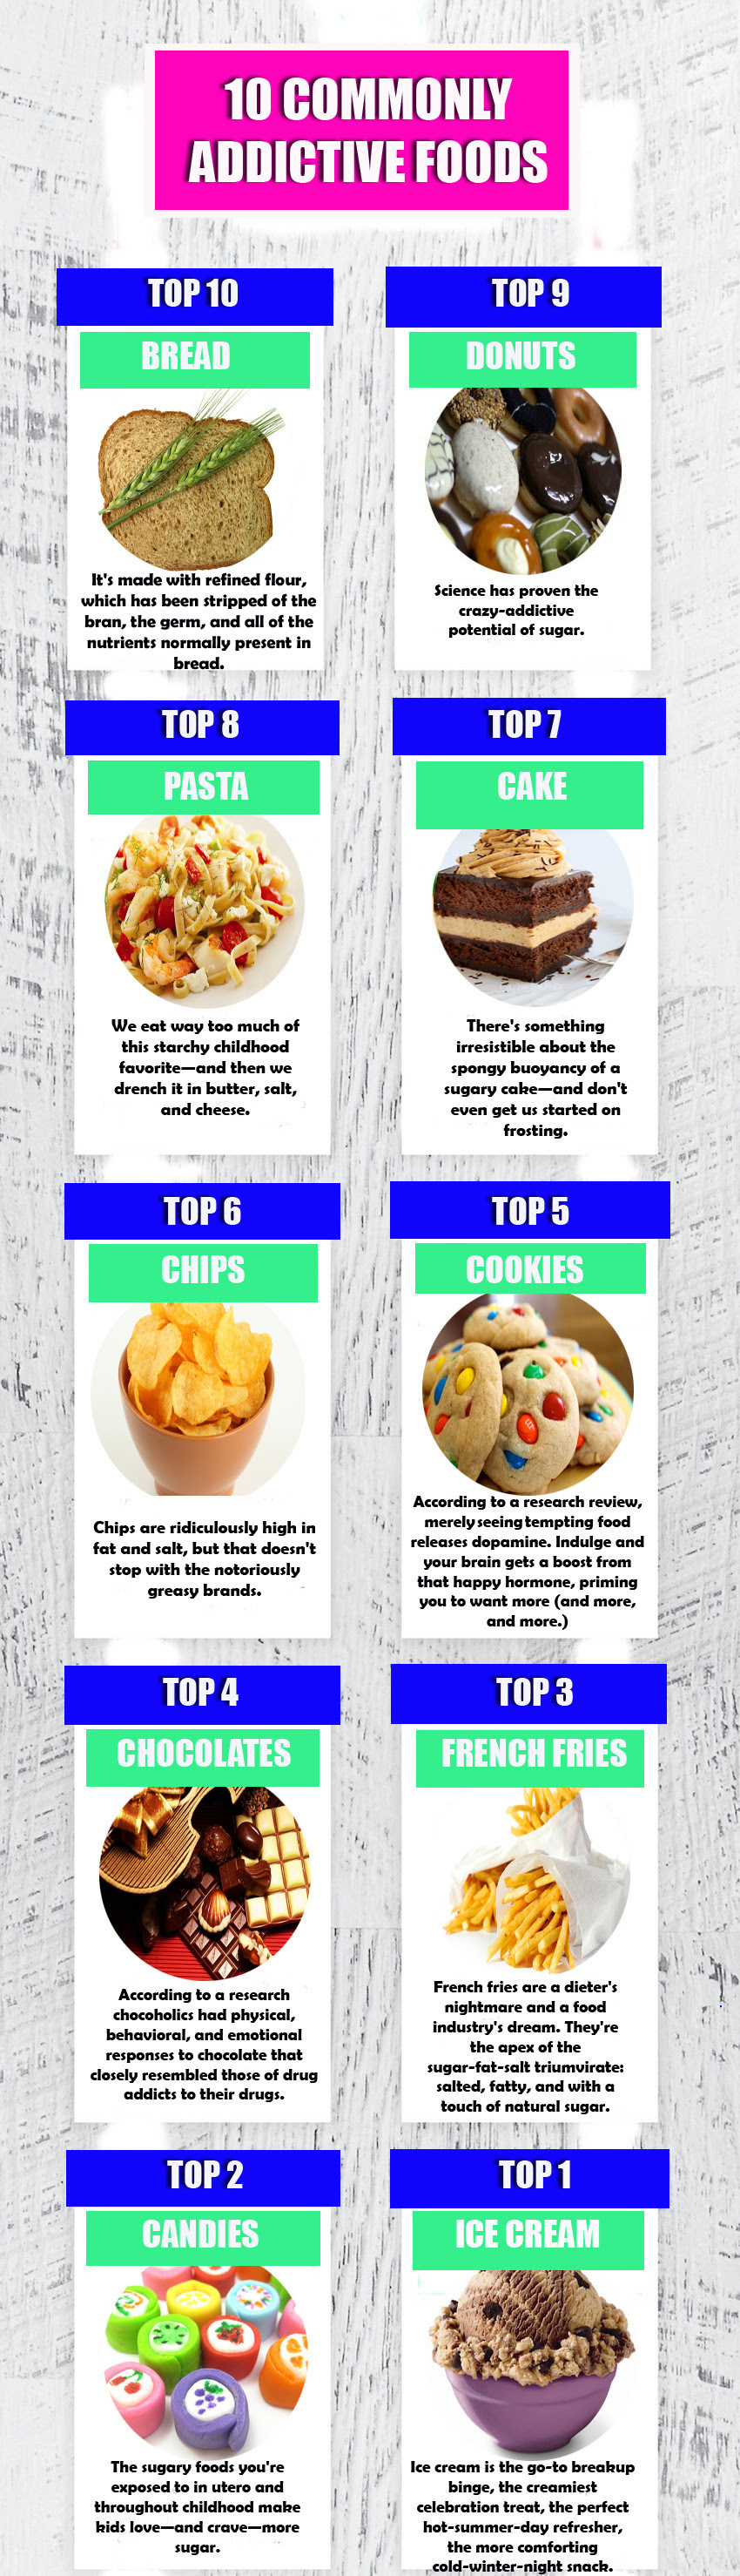 Infographic: 10 Commonly Addictive Foods #infographic